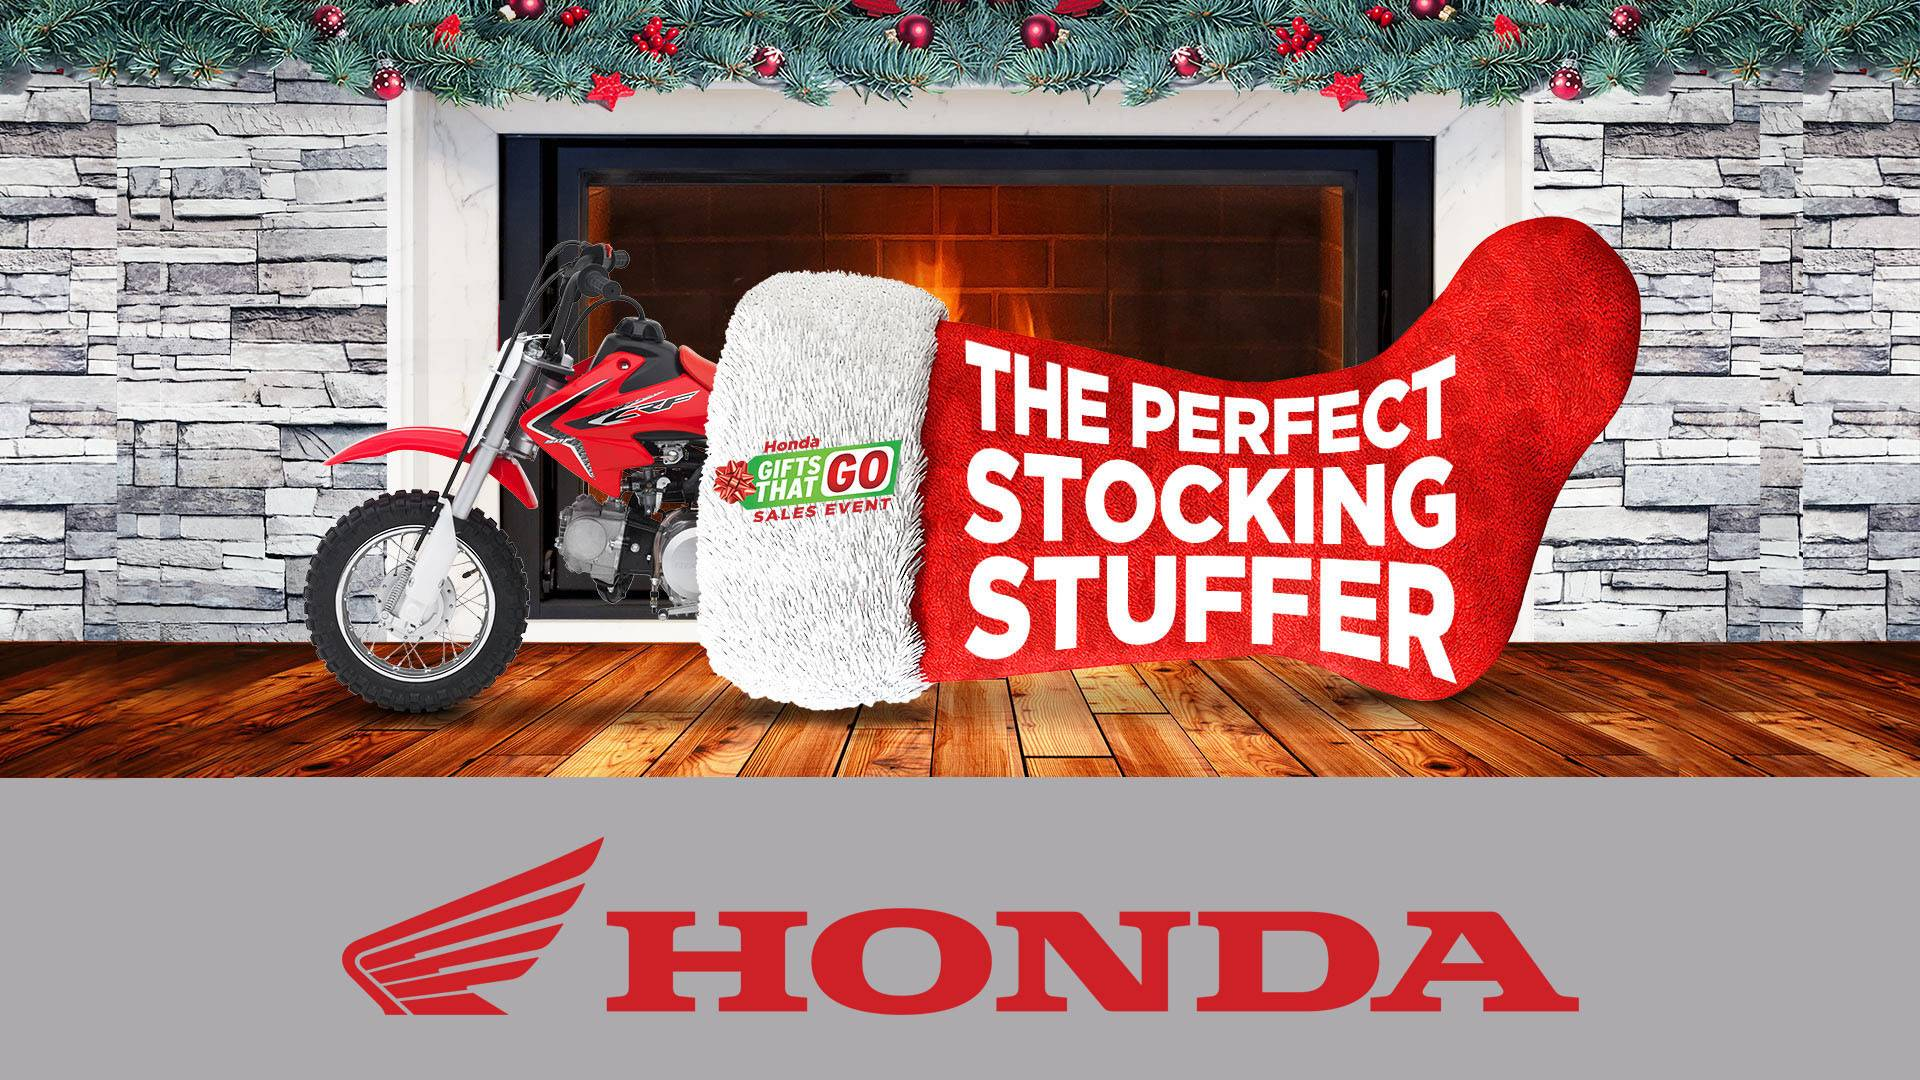 Honda - Gifts That Go Sales Event - All Motorcycles and Scooters